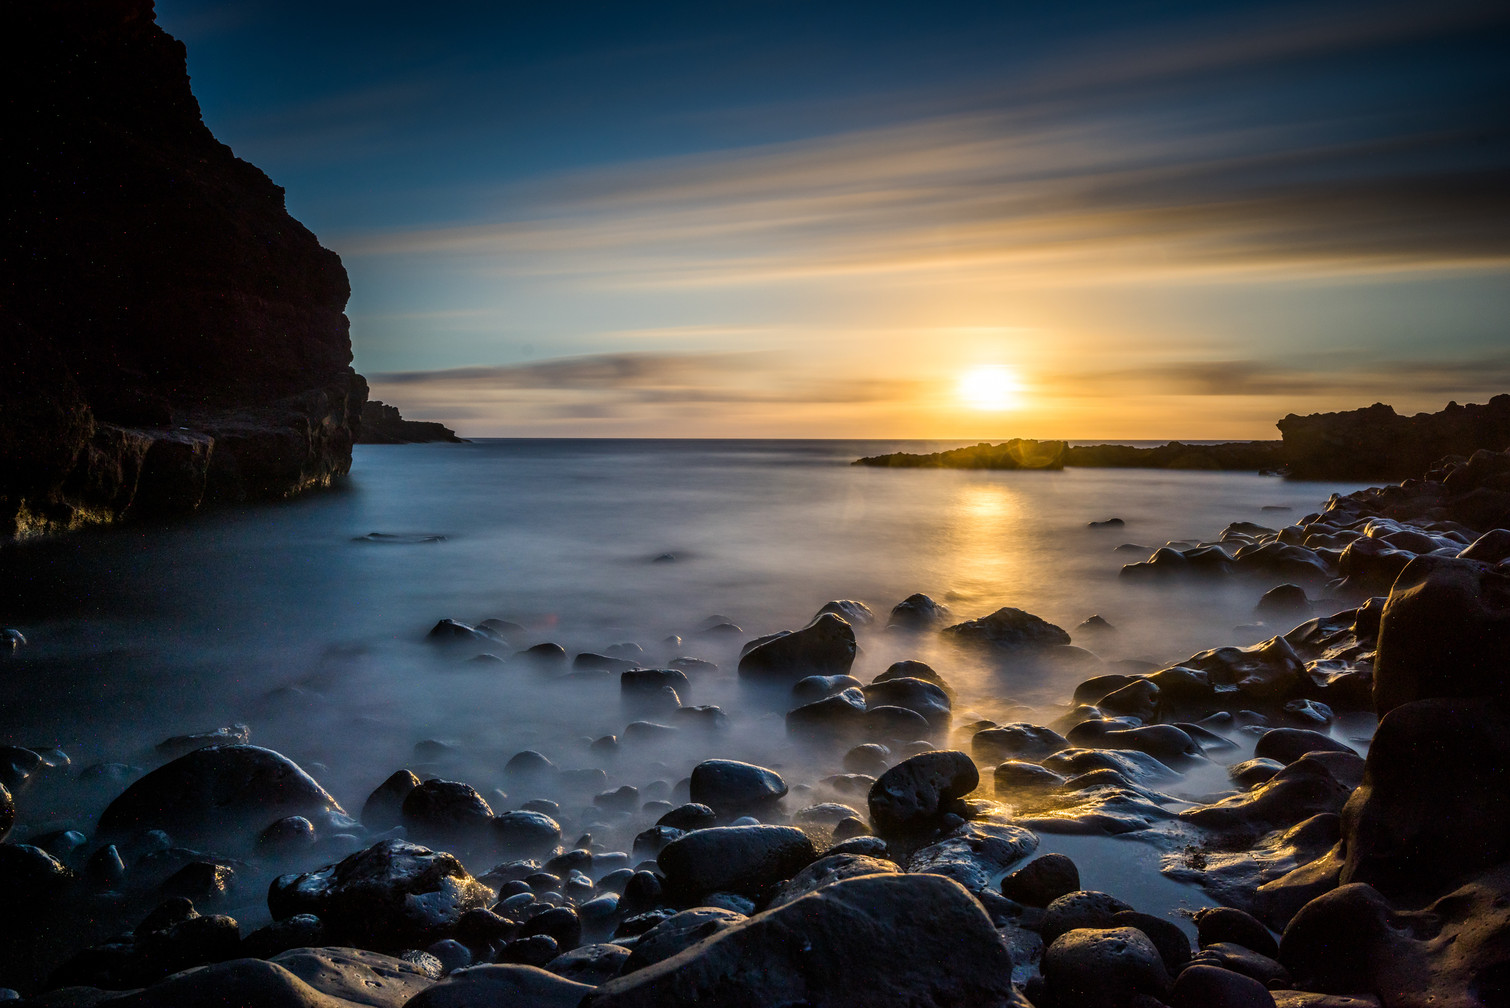 Sunset at Punta Teno - Tenerife - Canary Islands (Spain)